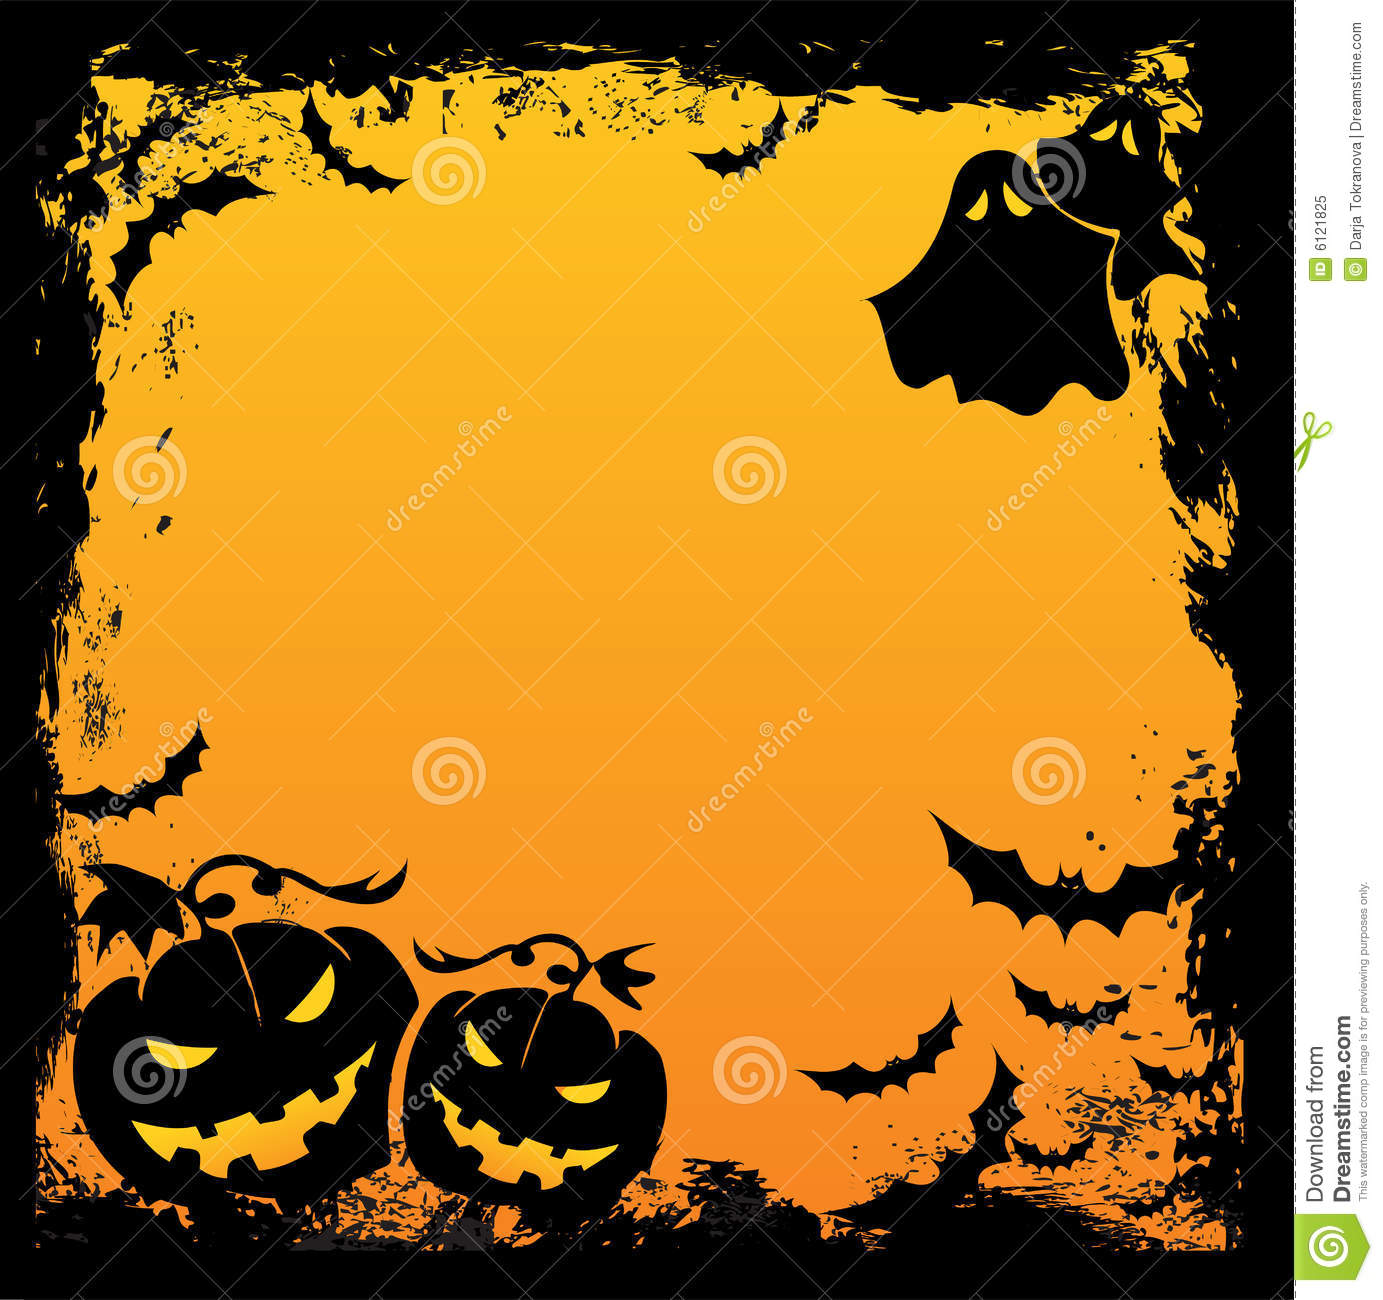 halloween background royalty free stock photo image 6121825 haunted house background vector haunted house vector image